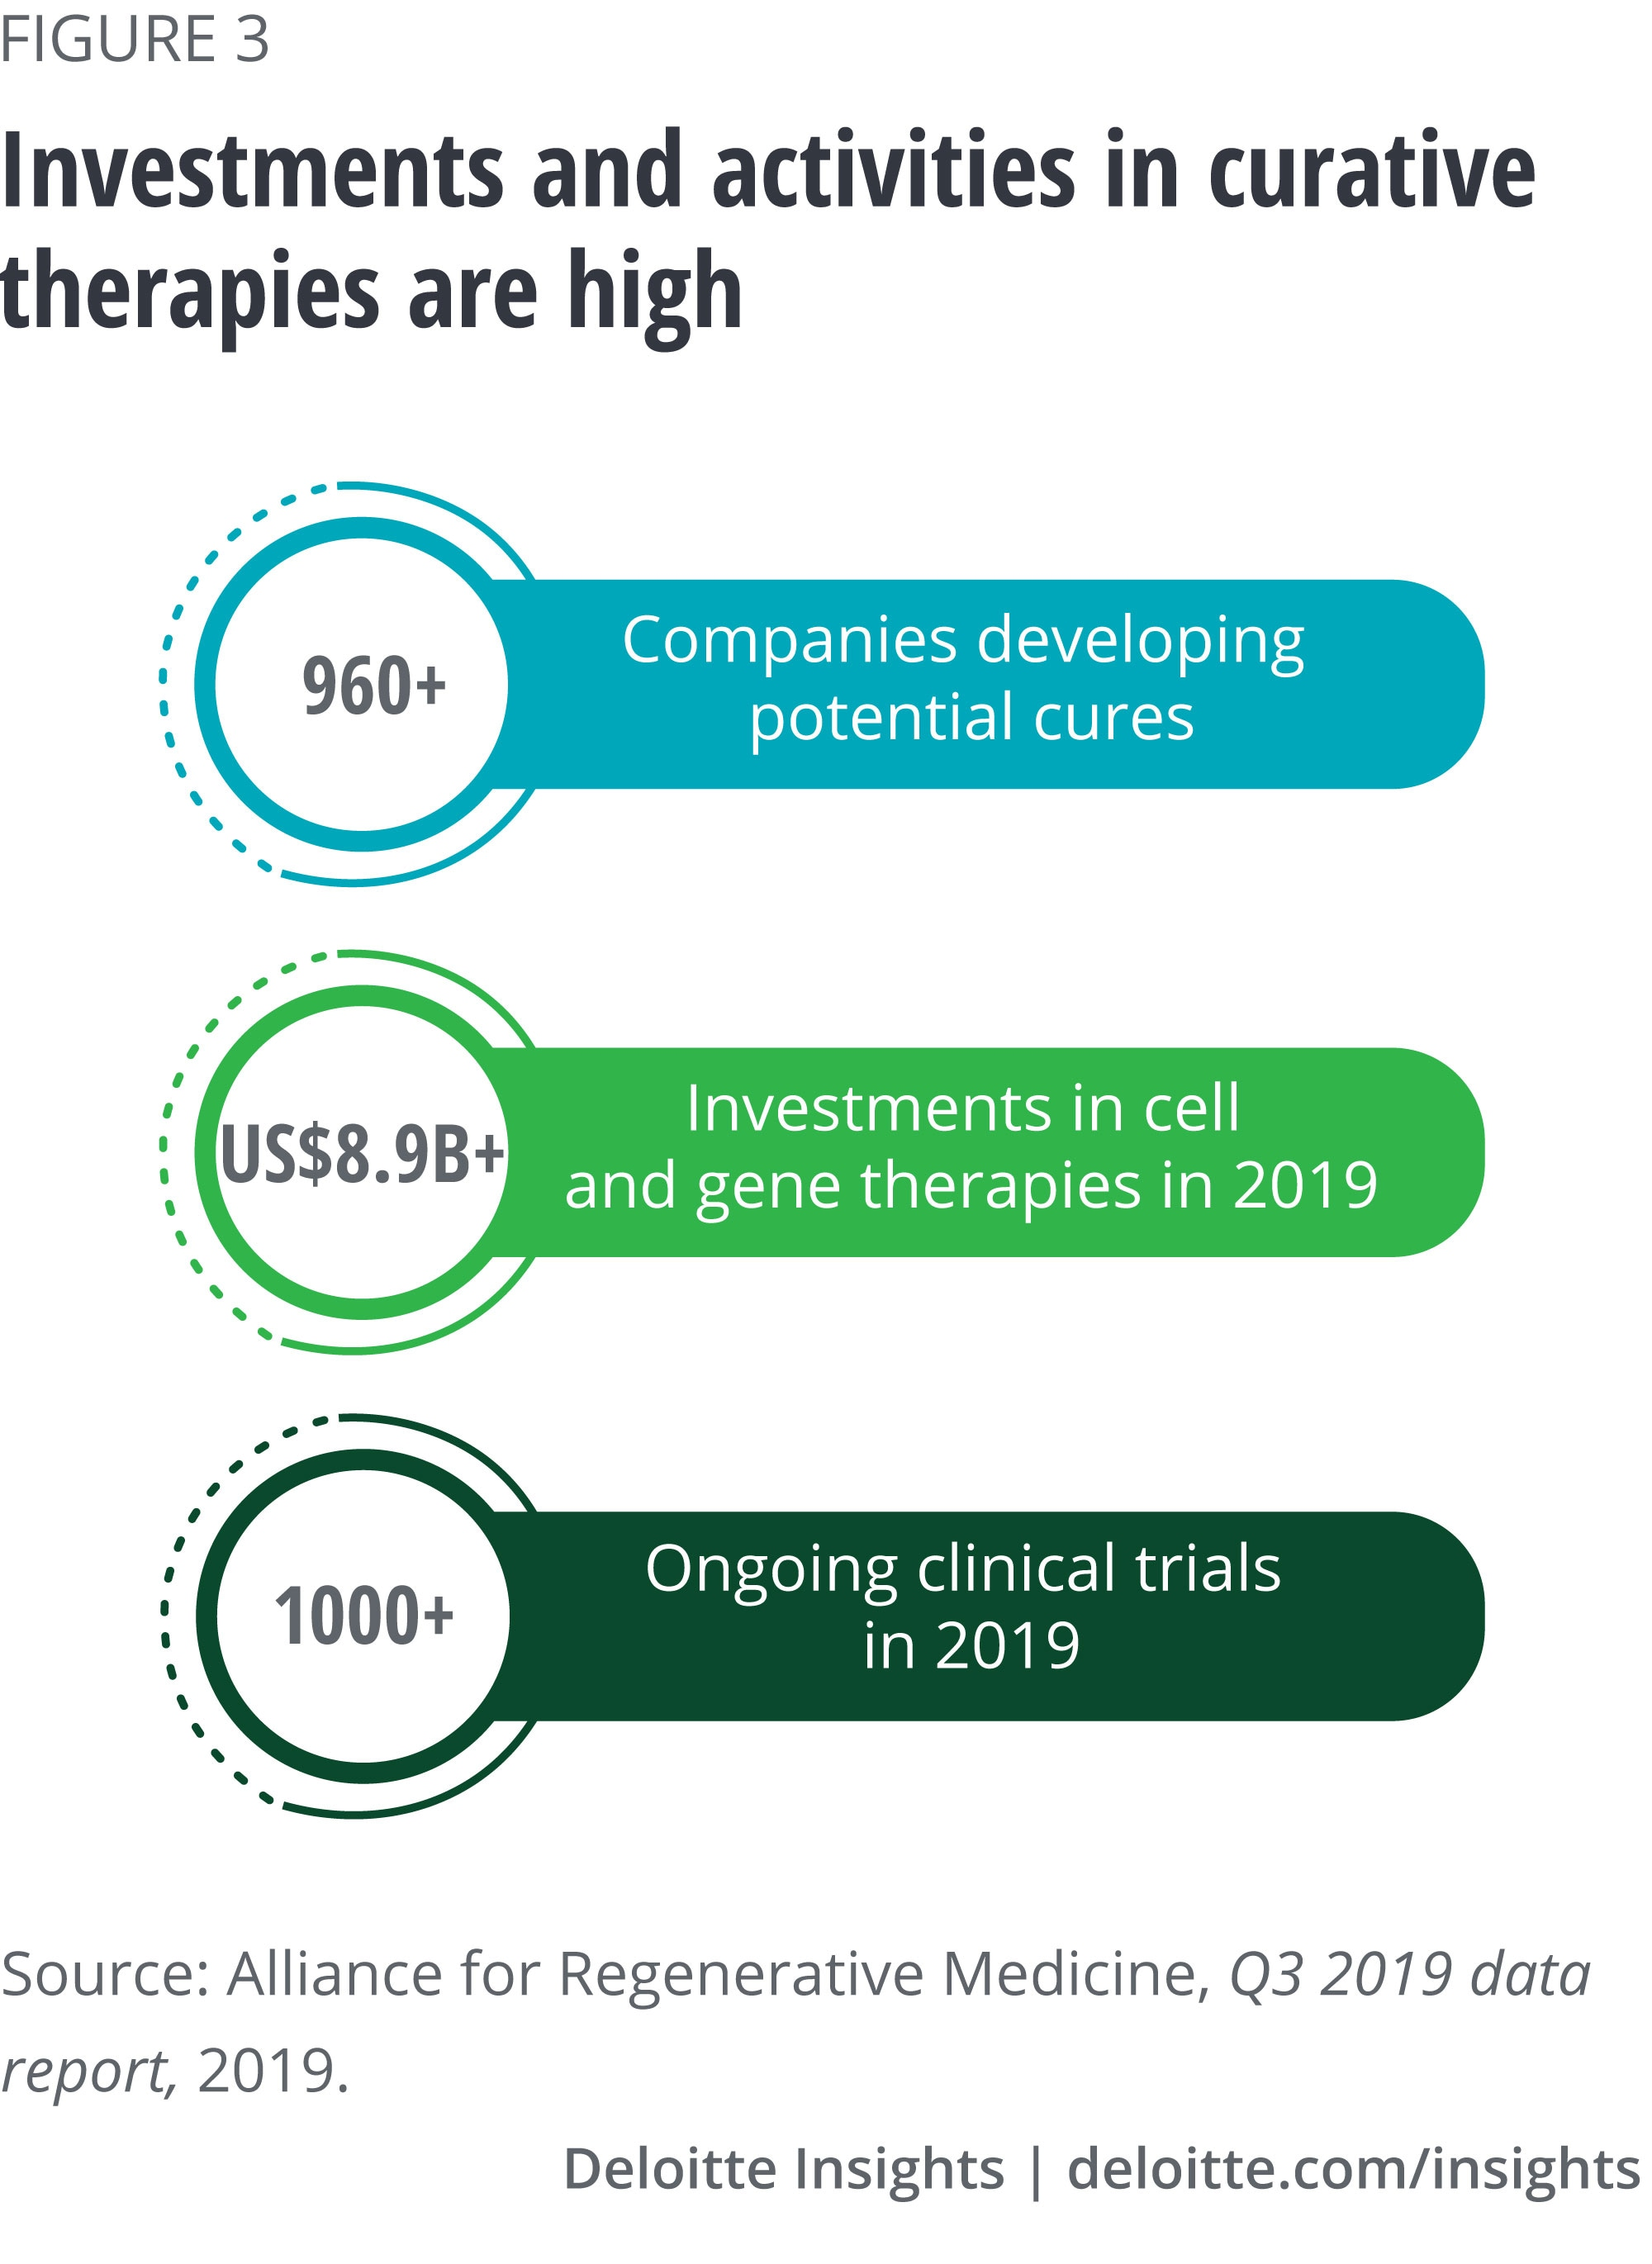 Investments and activities in curative therapies is high